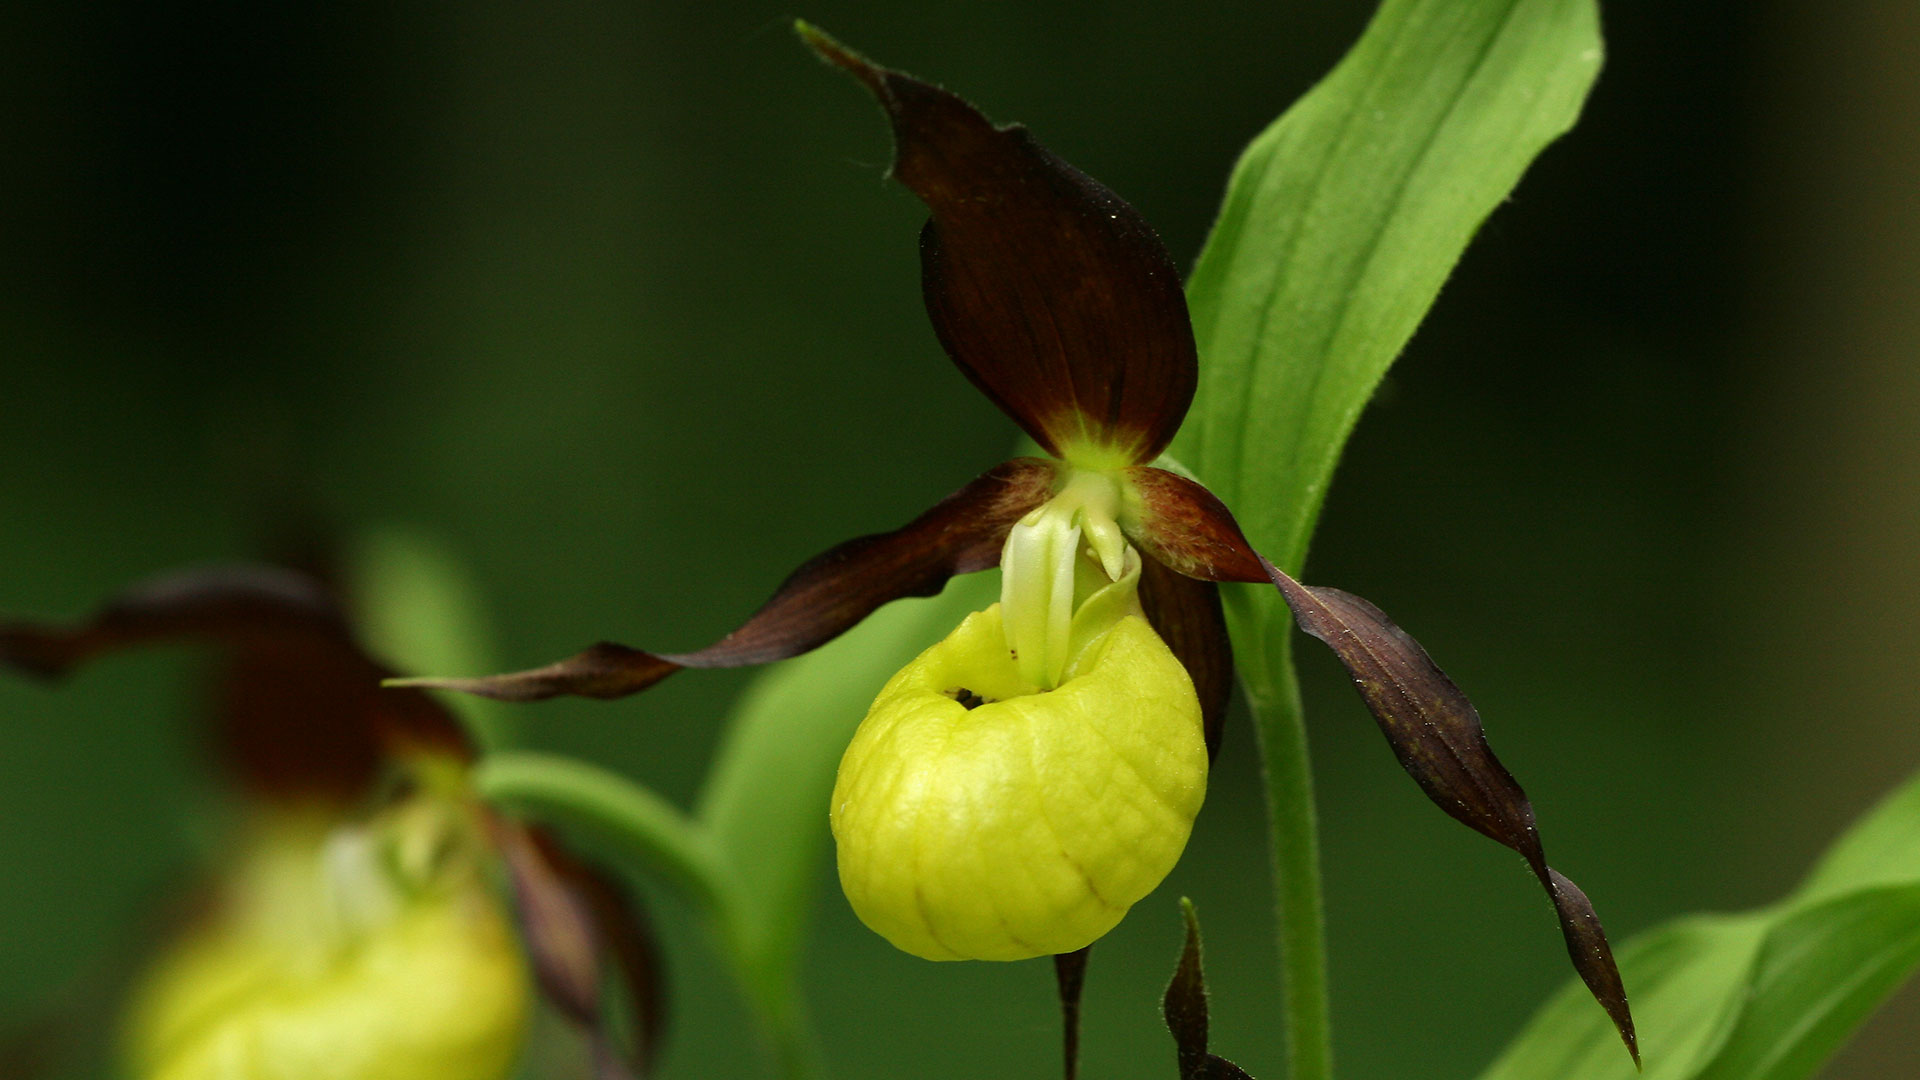 Frauenschuh / Cypripedium calceolus / Lady's-slipper orchid